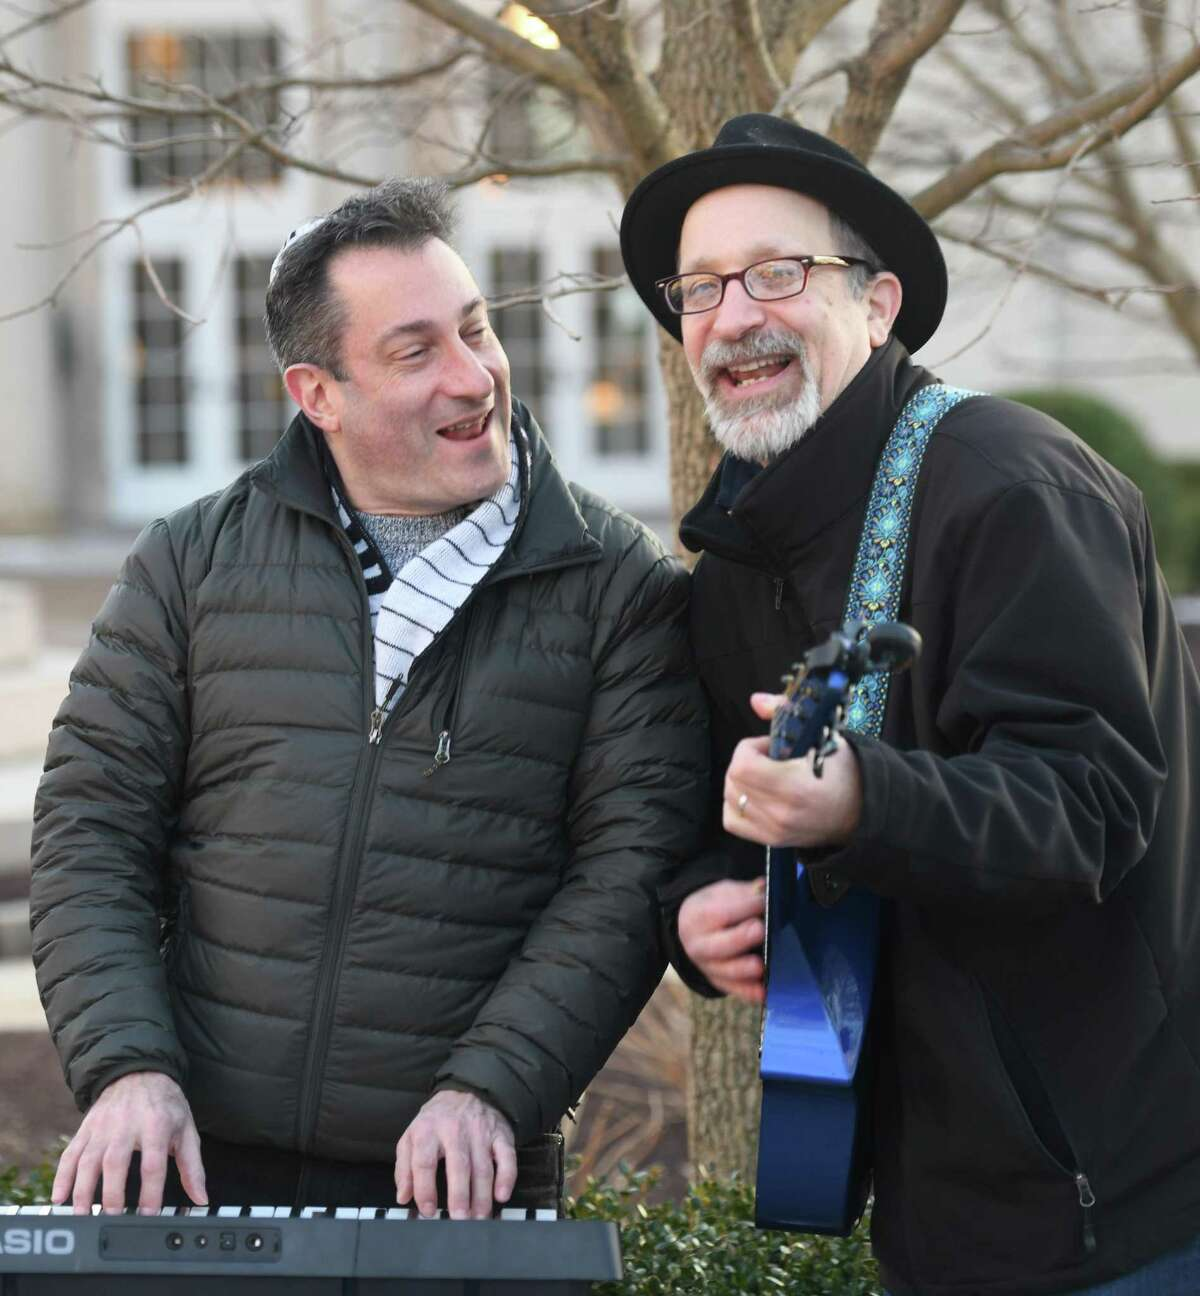 Jonathan Cahr, left, and Booby Doowah perform as the Doowah Diddy Ohs at Chabad of Greenwich's Chanukah Wonderland on Greenwich Avenue in Greenwich, Conn. Sunday, Dec. 22, 2019. Folks celebrated the first night of Chanukah with a giant outdoor menorah lighting, as well as donut decorating, arts and crafts, music, a virtural reality tour, and the Chanukah story as told by Judah Maccabee.